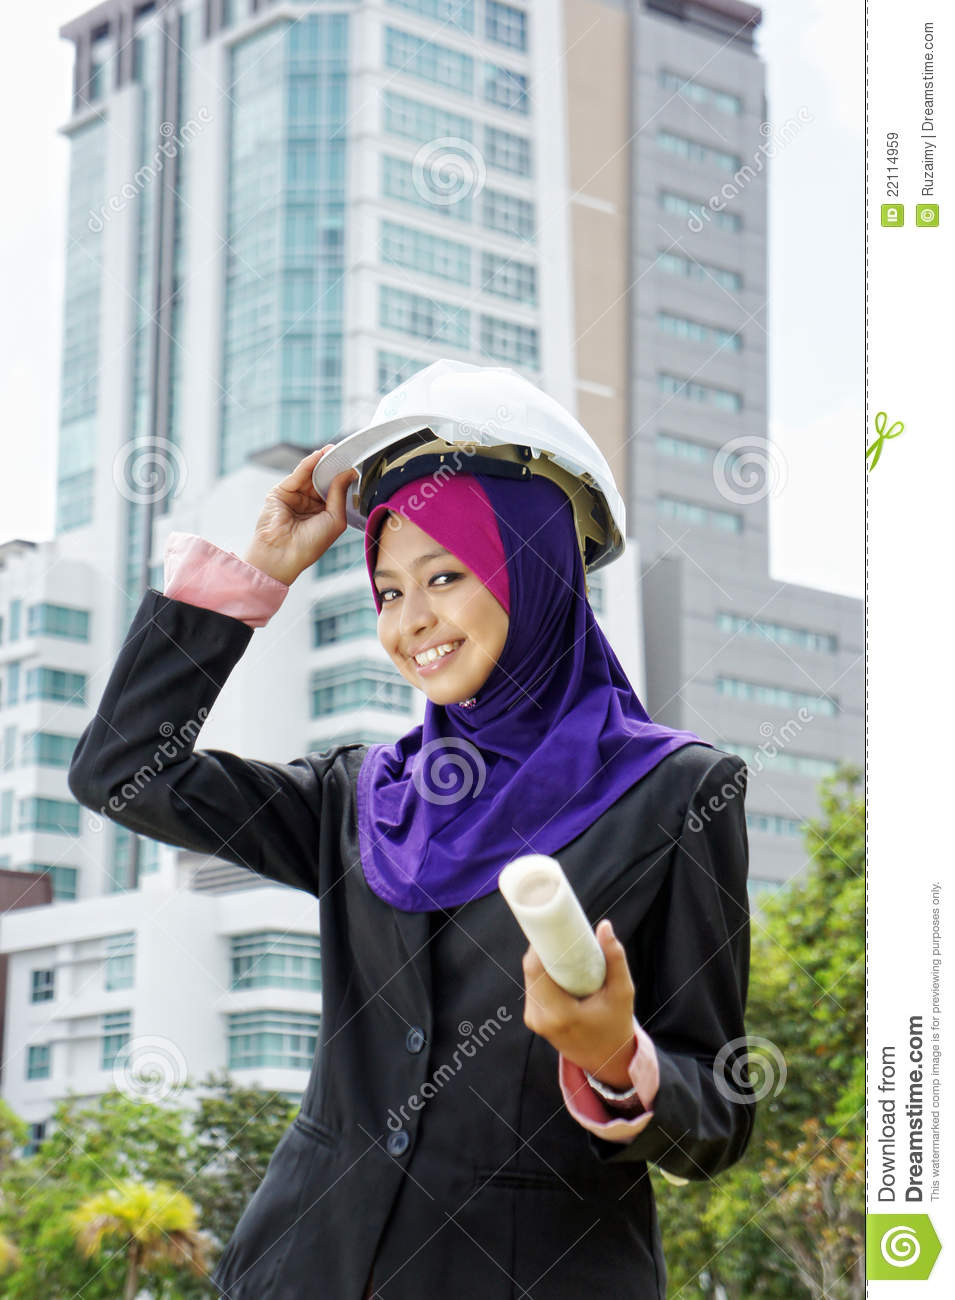 lockesburg muslim women dating site This modern muslim woman has a powerful take on dating since i was 10 years old, my mom has been drilling this mantra into my head: you are a muslim, and you will not date my mother does want me to get married, but she (like many of my muslim friends' parents) wants me to follow a more.